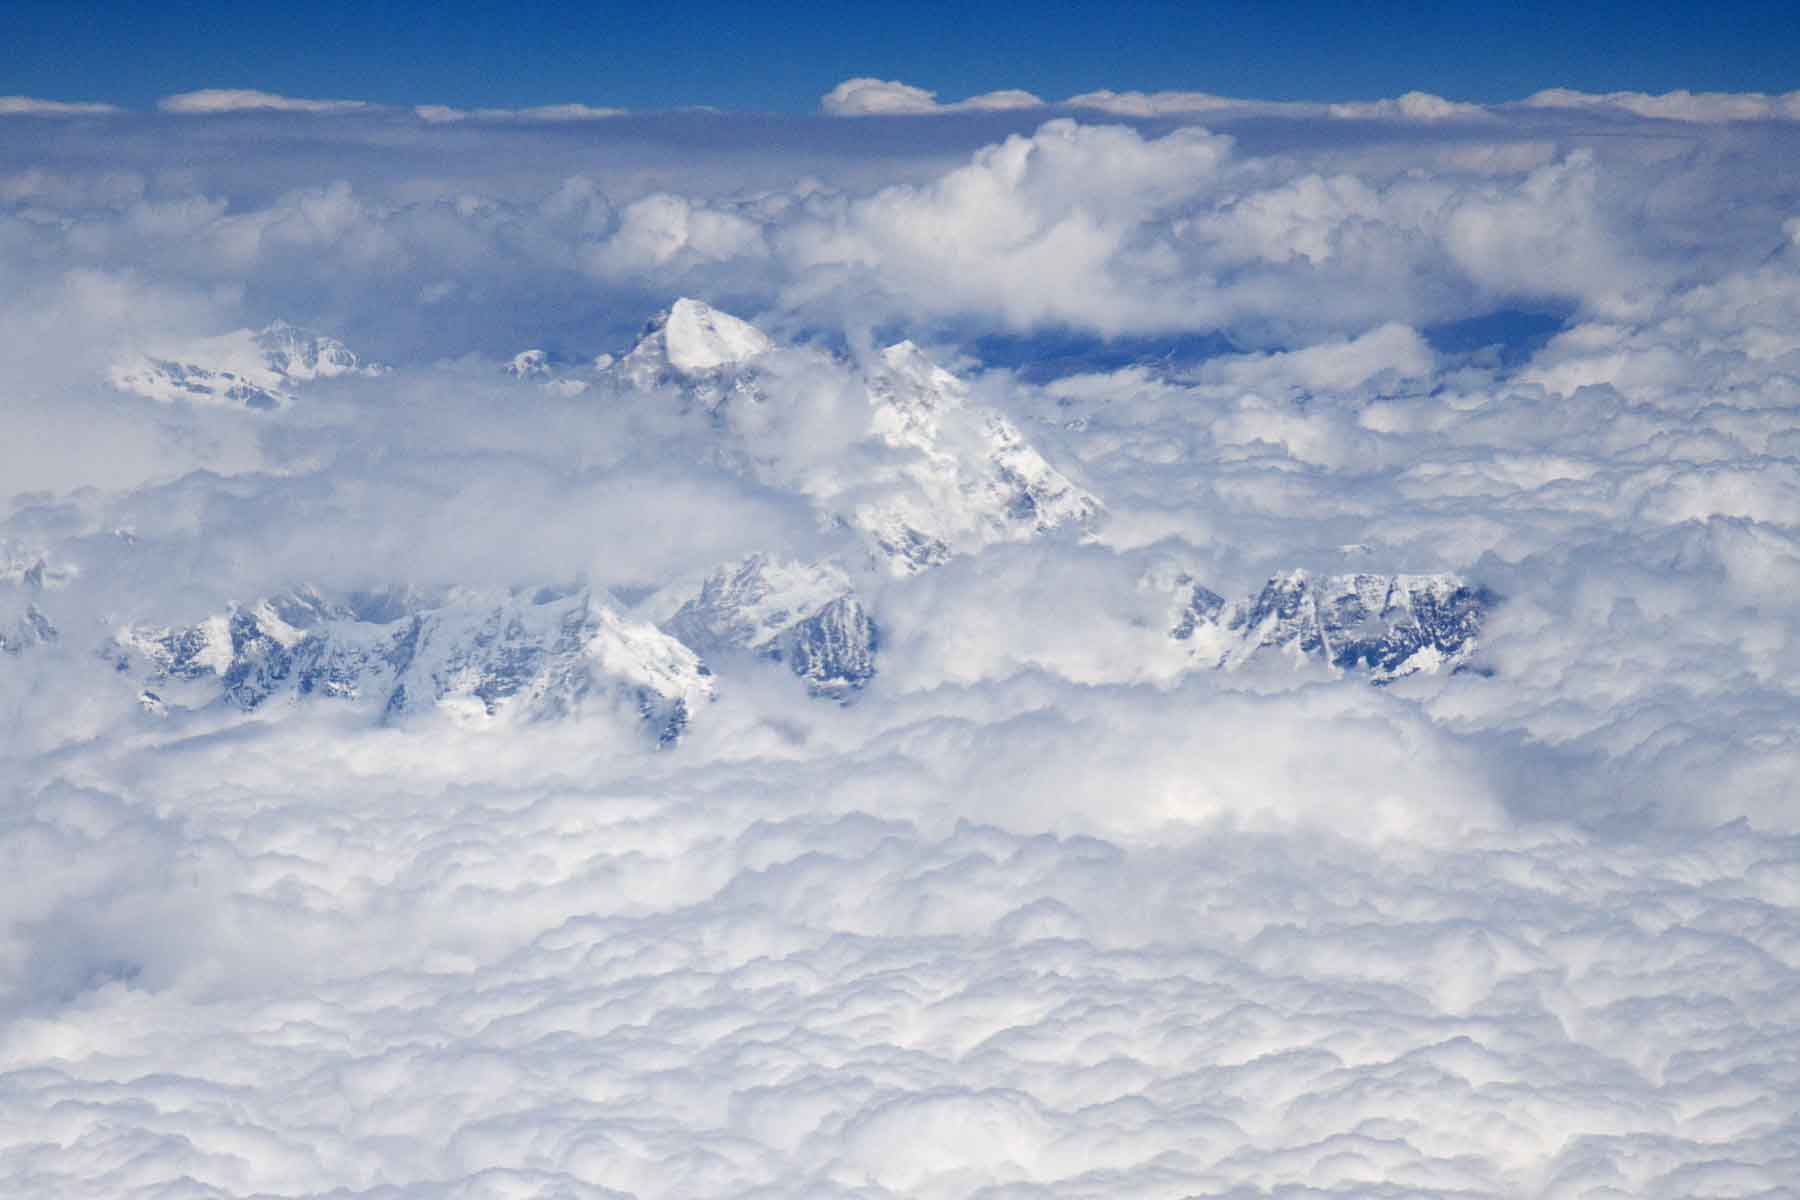 Mt Everest from the window of our plane